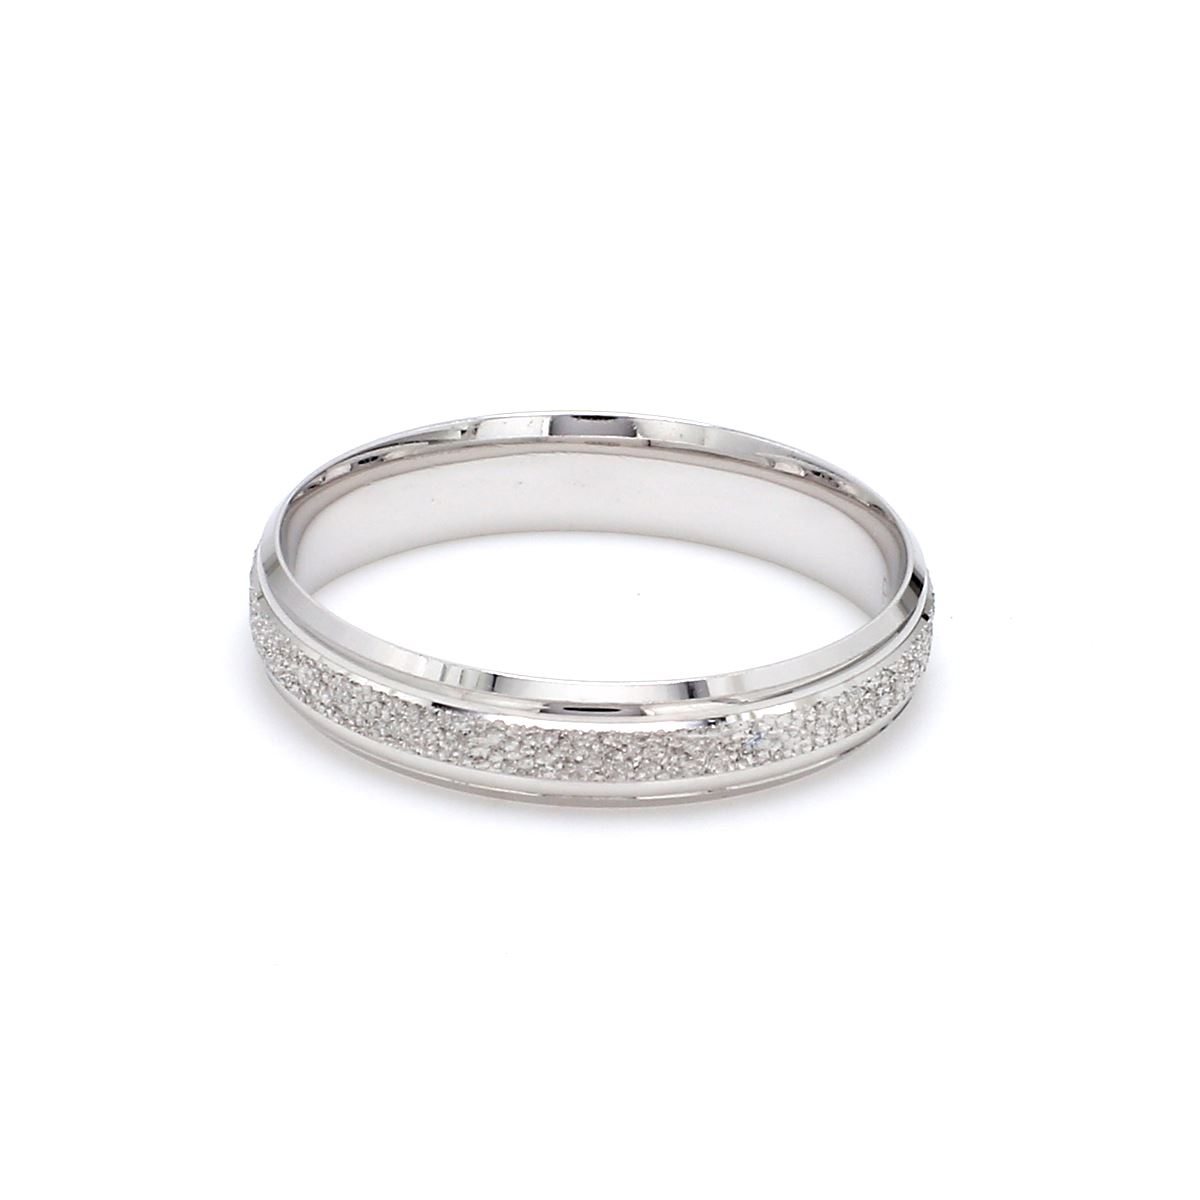 Japanese Platinum Ring JL PT 609 by Jewelove